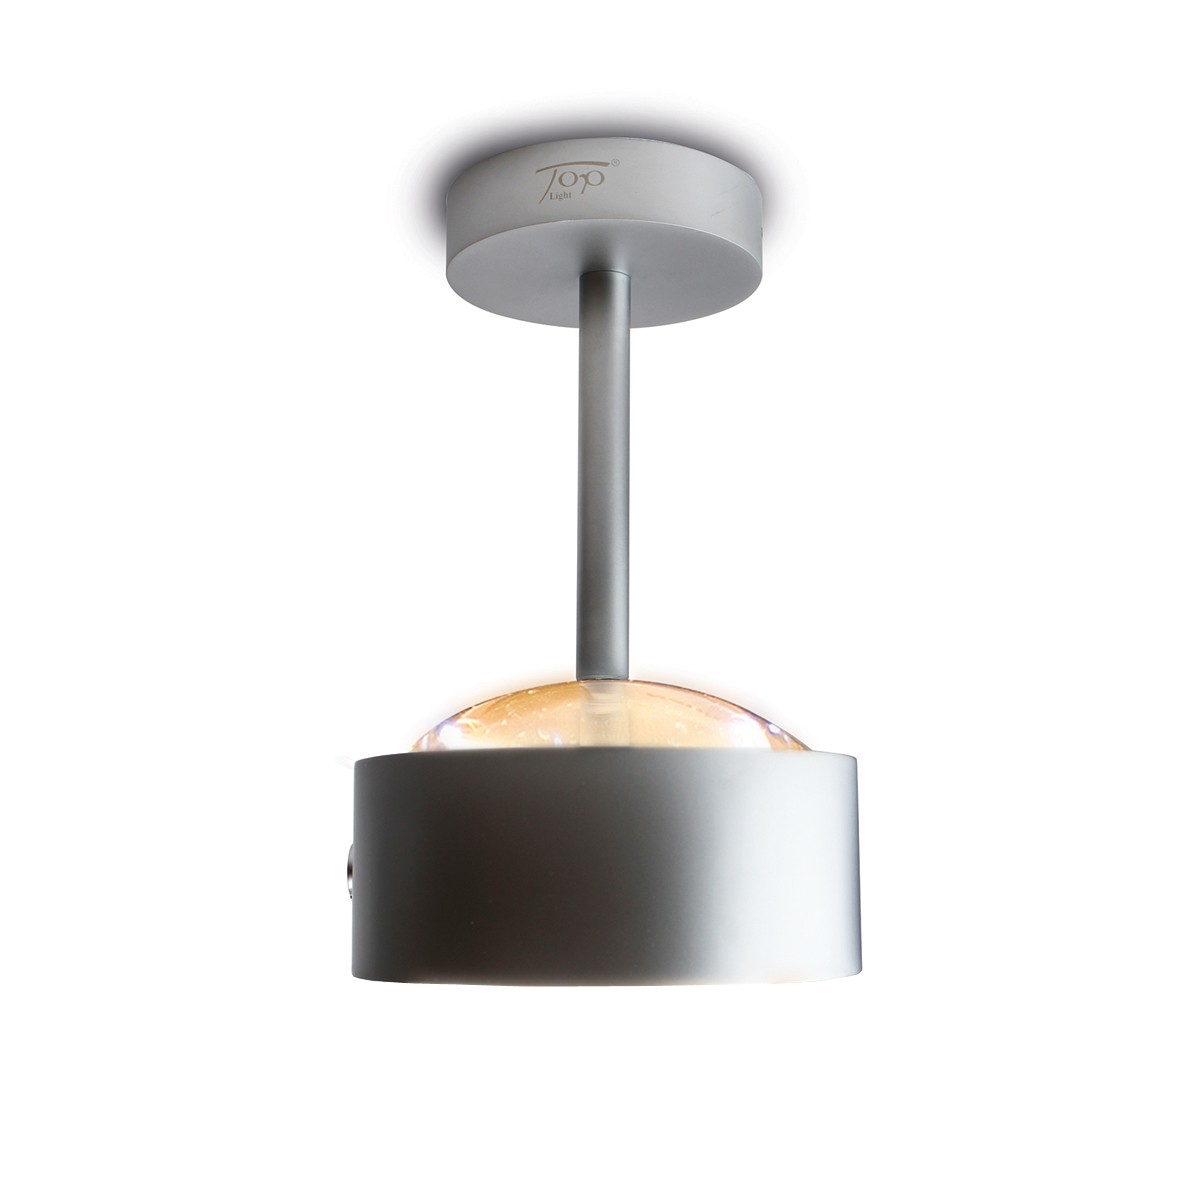 Top Light Puk Maxx Eye Ceiling Deckenleuchte, Chrom matt